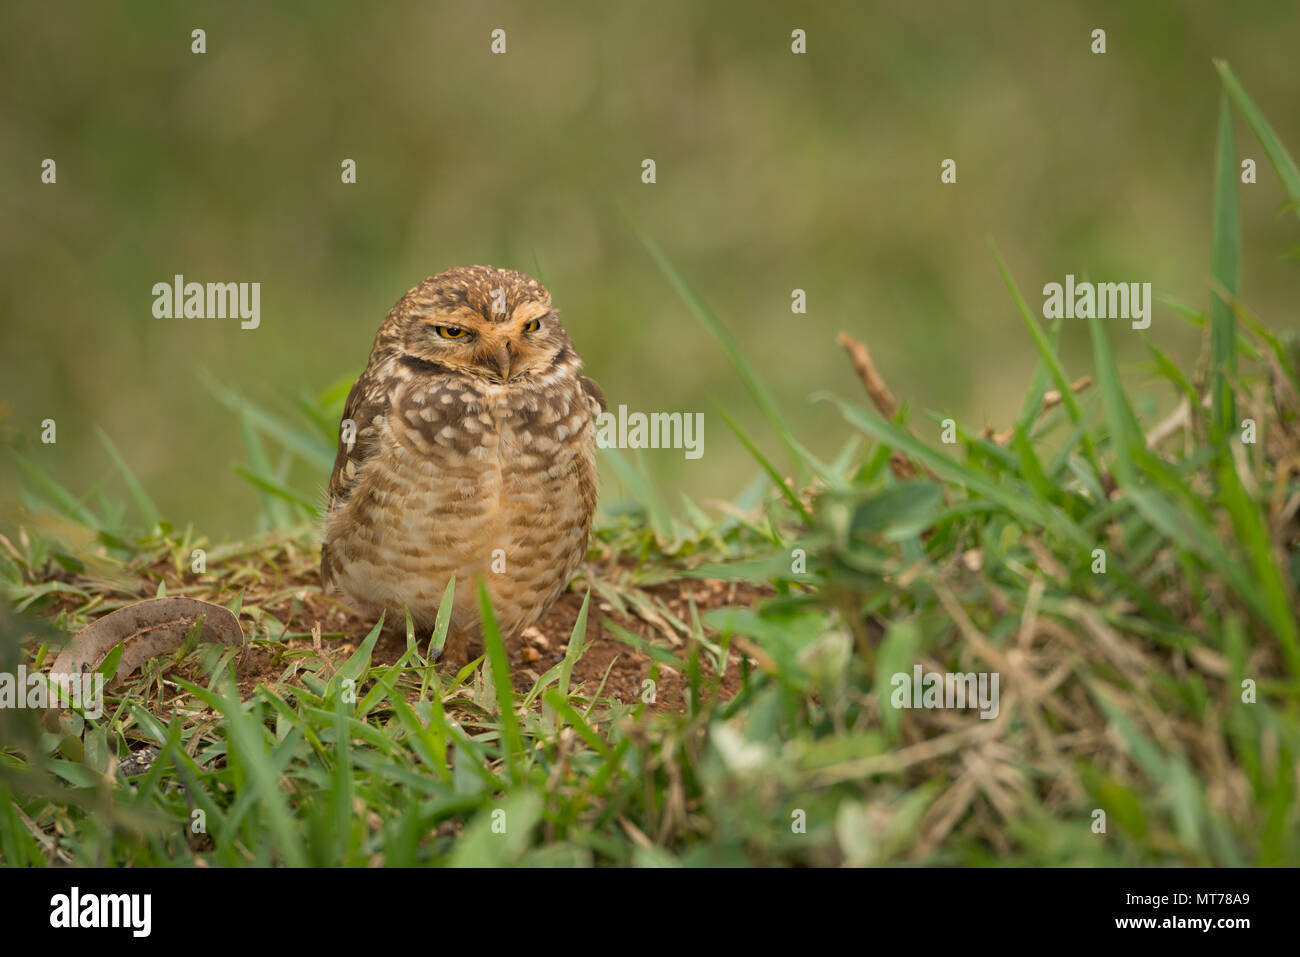 Burrowing Owl (Athene cunicularia) from SE Brazil - Stock Image